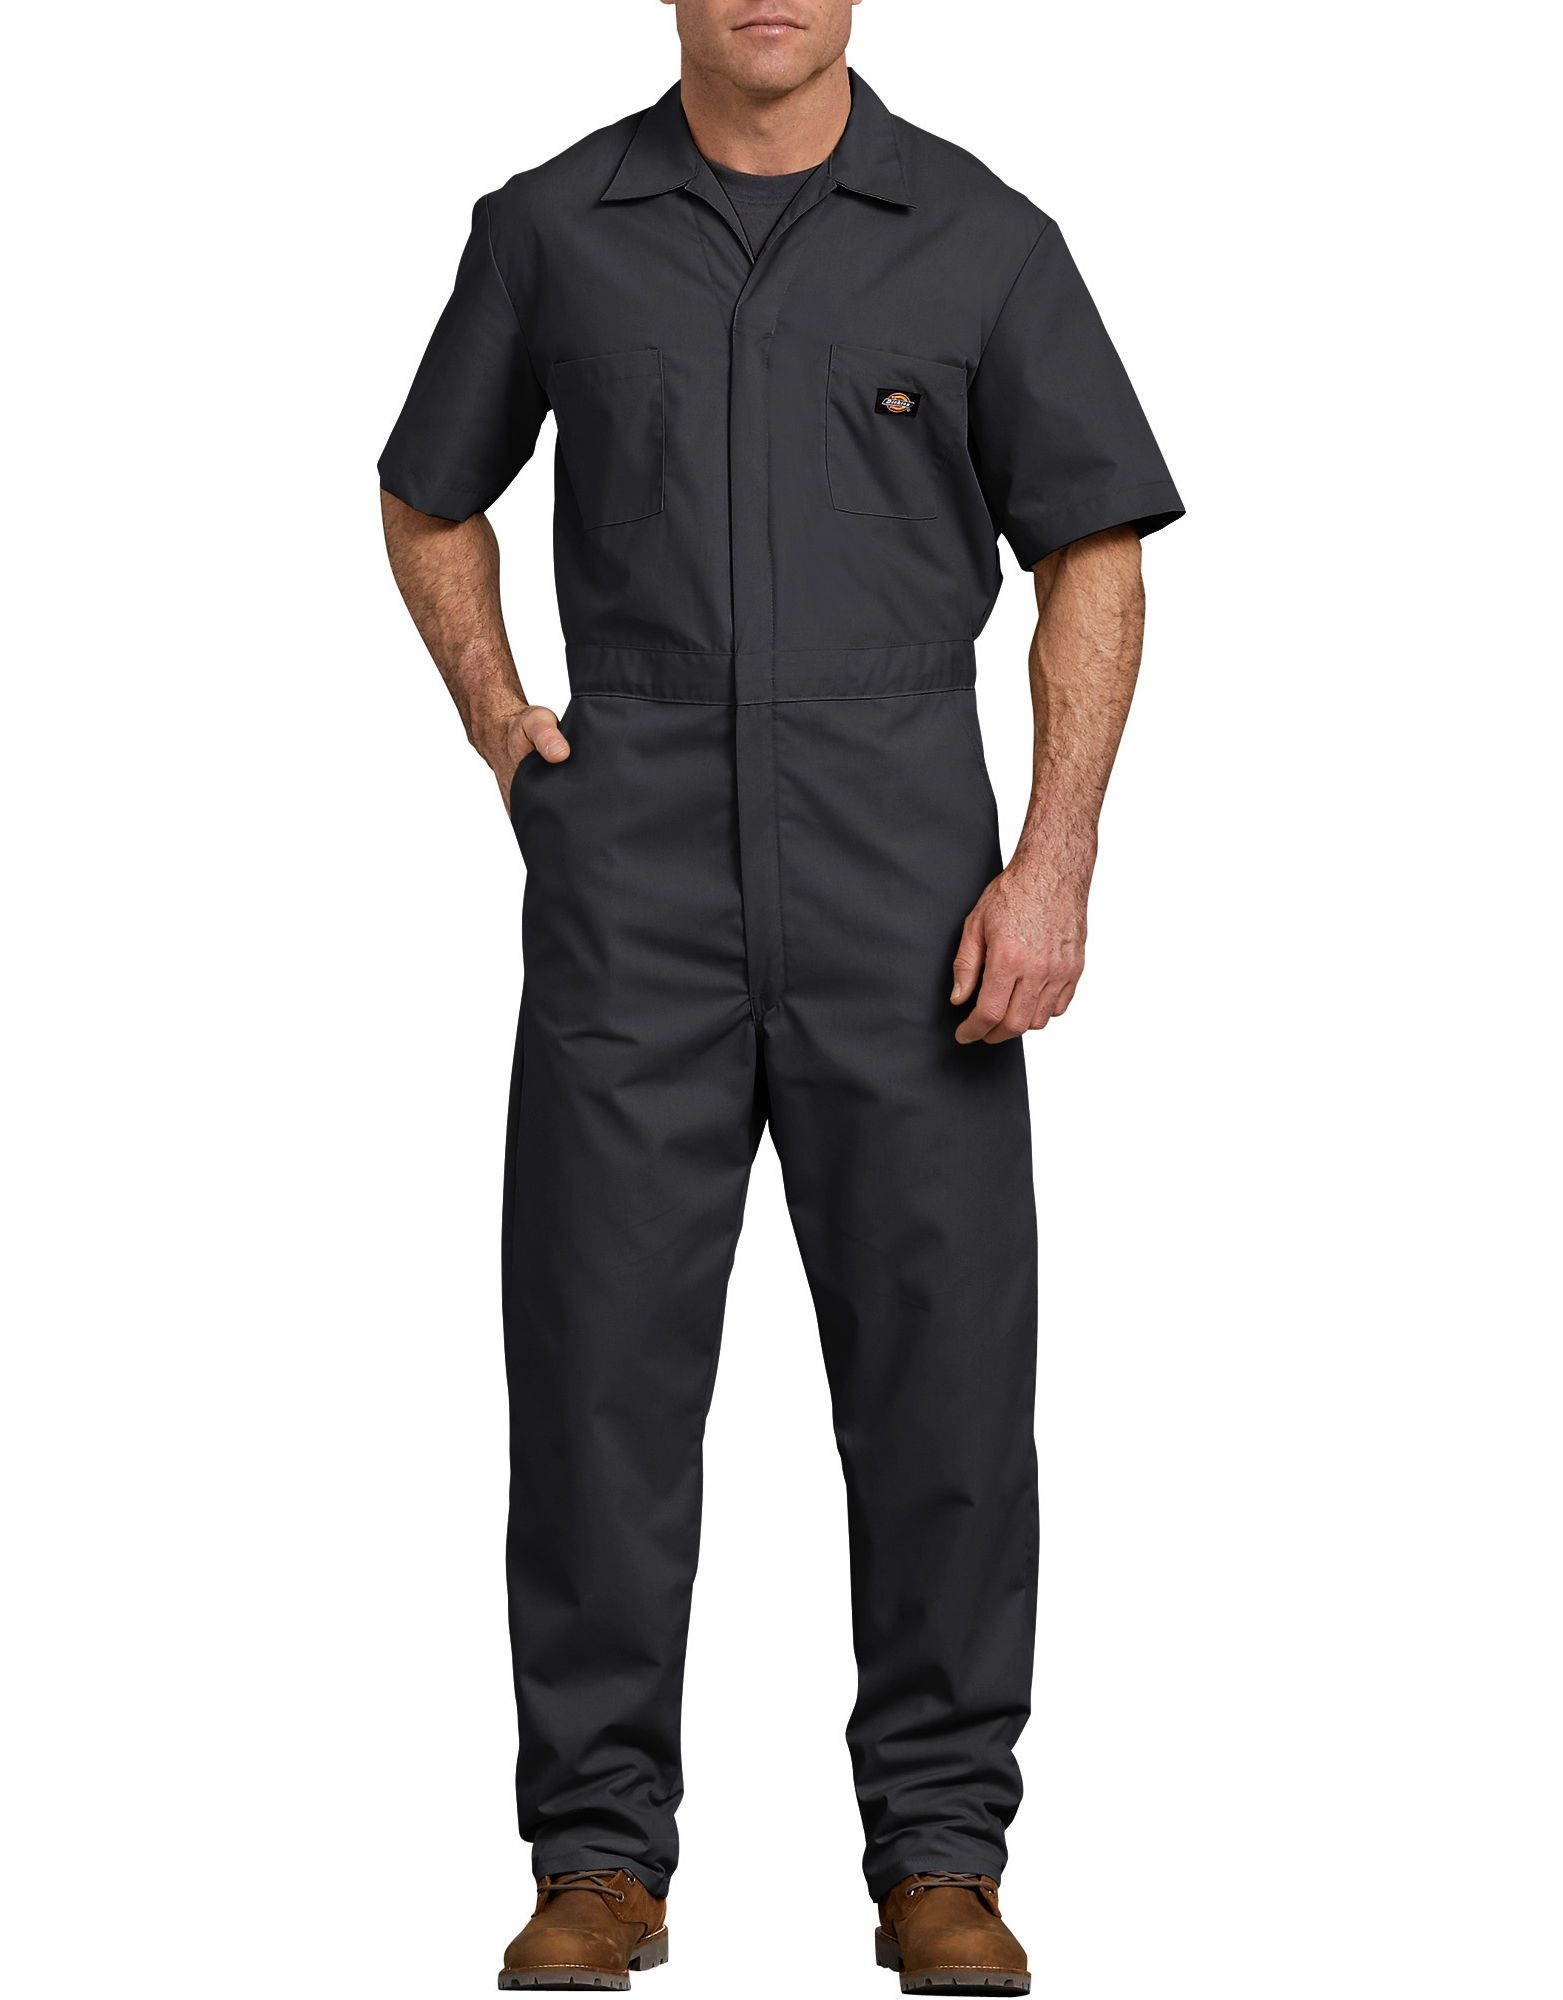 short sleeve coveralls men short sleeve dickies on best insulated coveralls for men id=41984